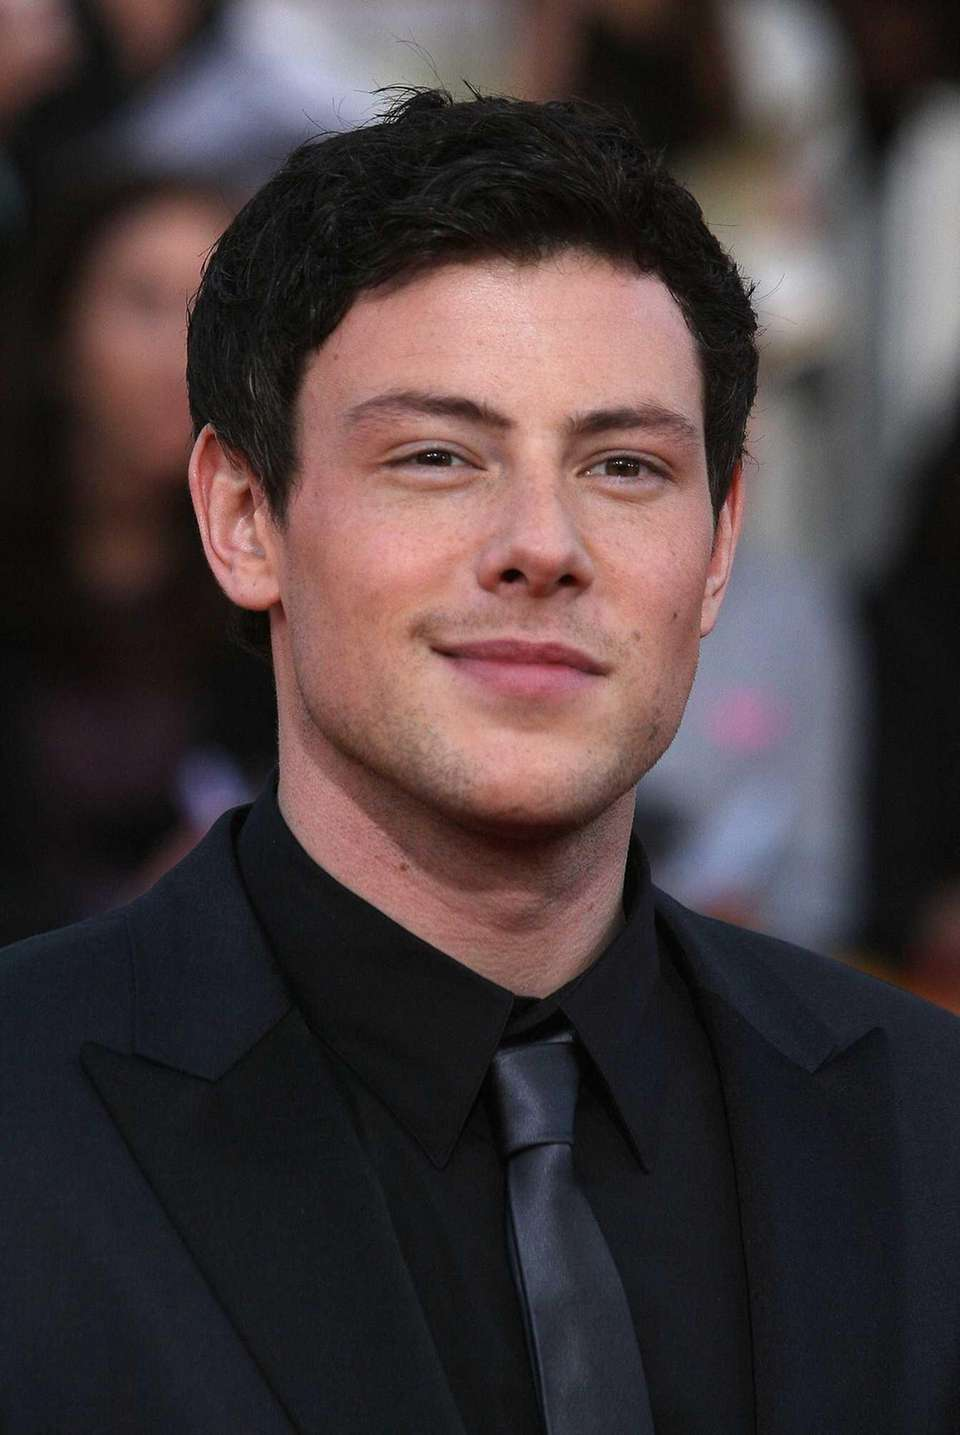 Cory Monteith (May 11, 1982 -- July 13,